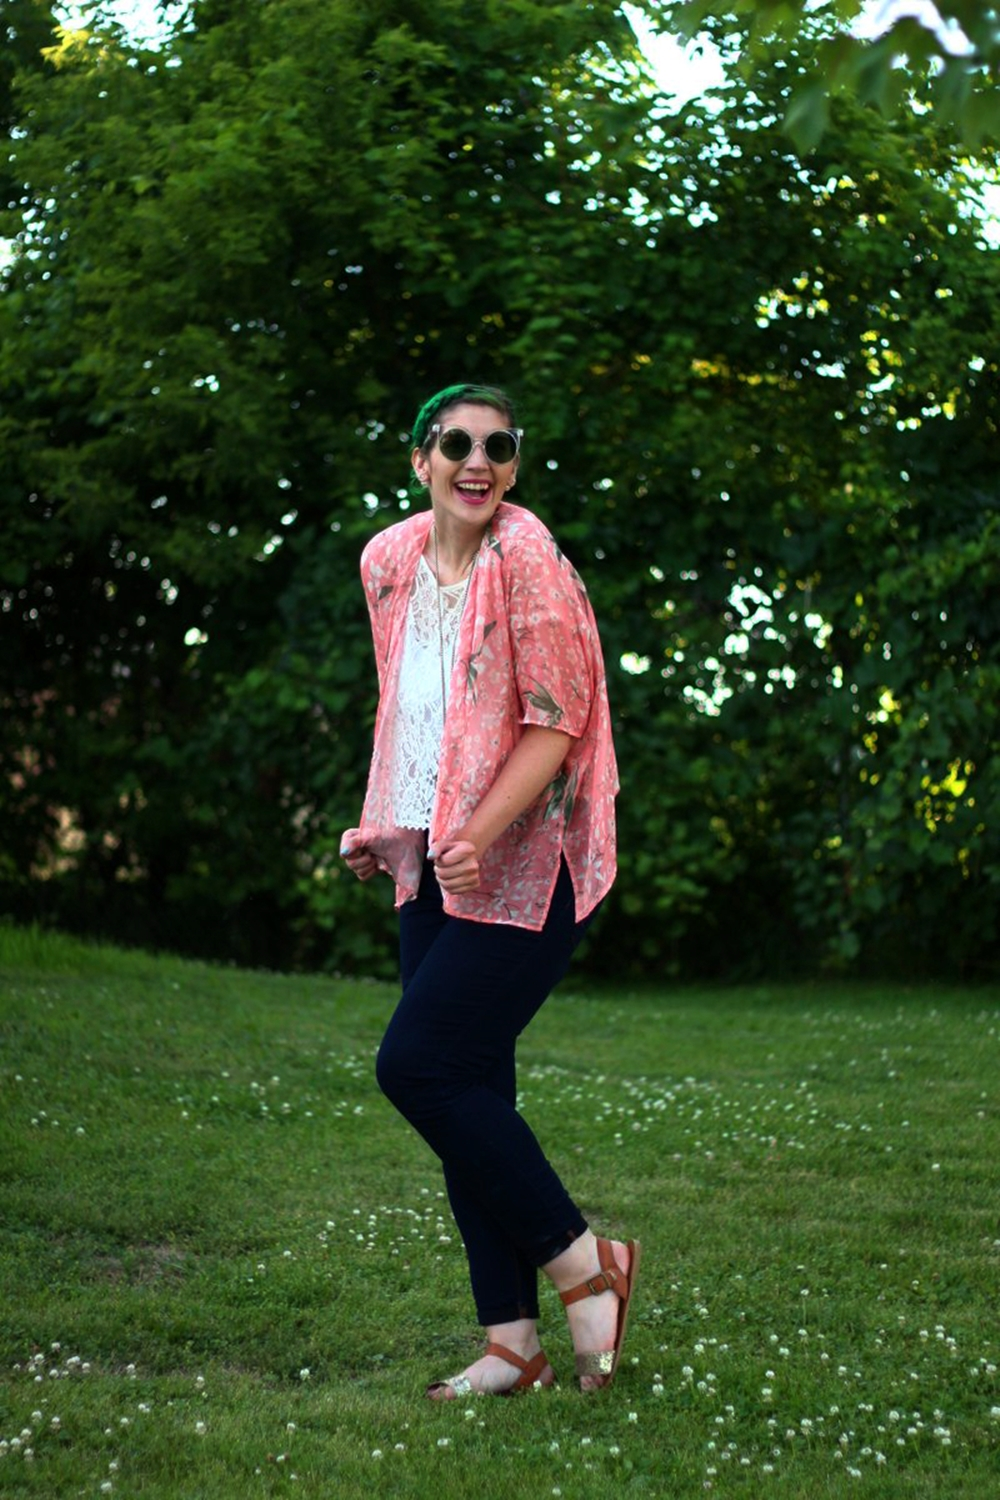 sunglasses-green-hair-pink-kimono-summer-outfit-05